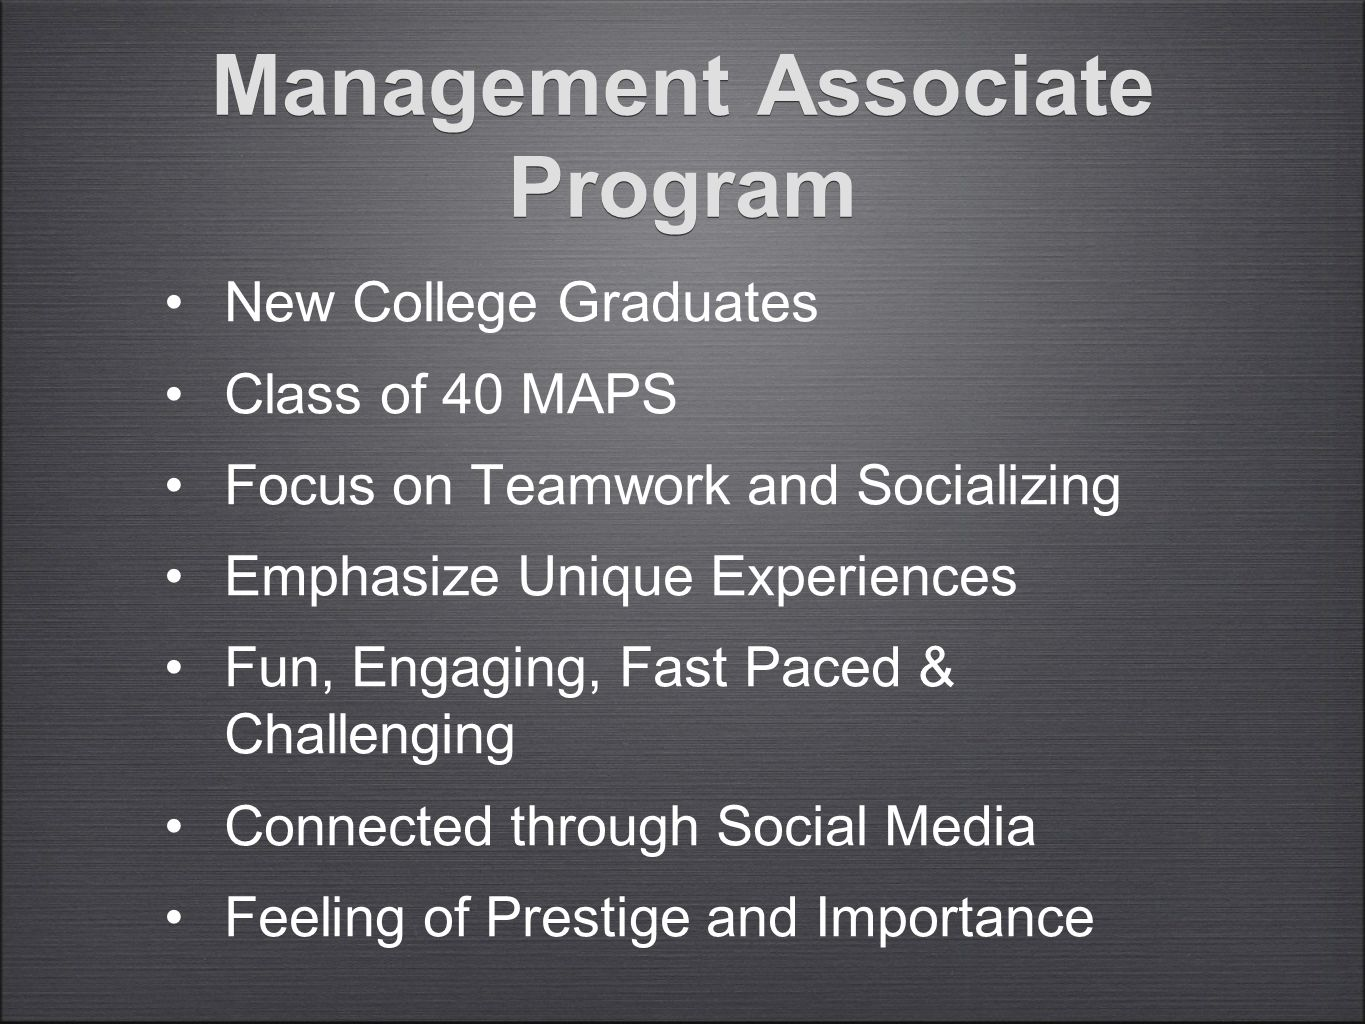 Management Associate Program New College Graduates Class of 40 MAPS Focus on Teamwork and Socializing Emphasize Unique Experiences Fun, Engaging, Fast